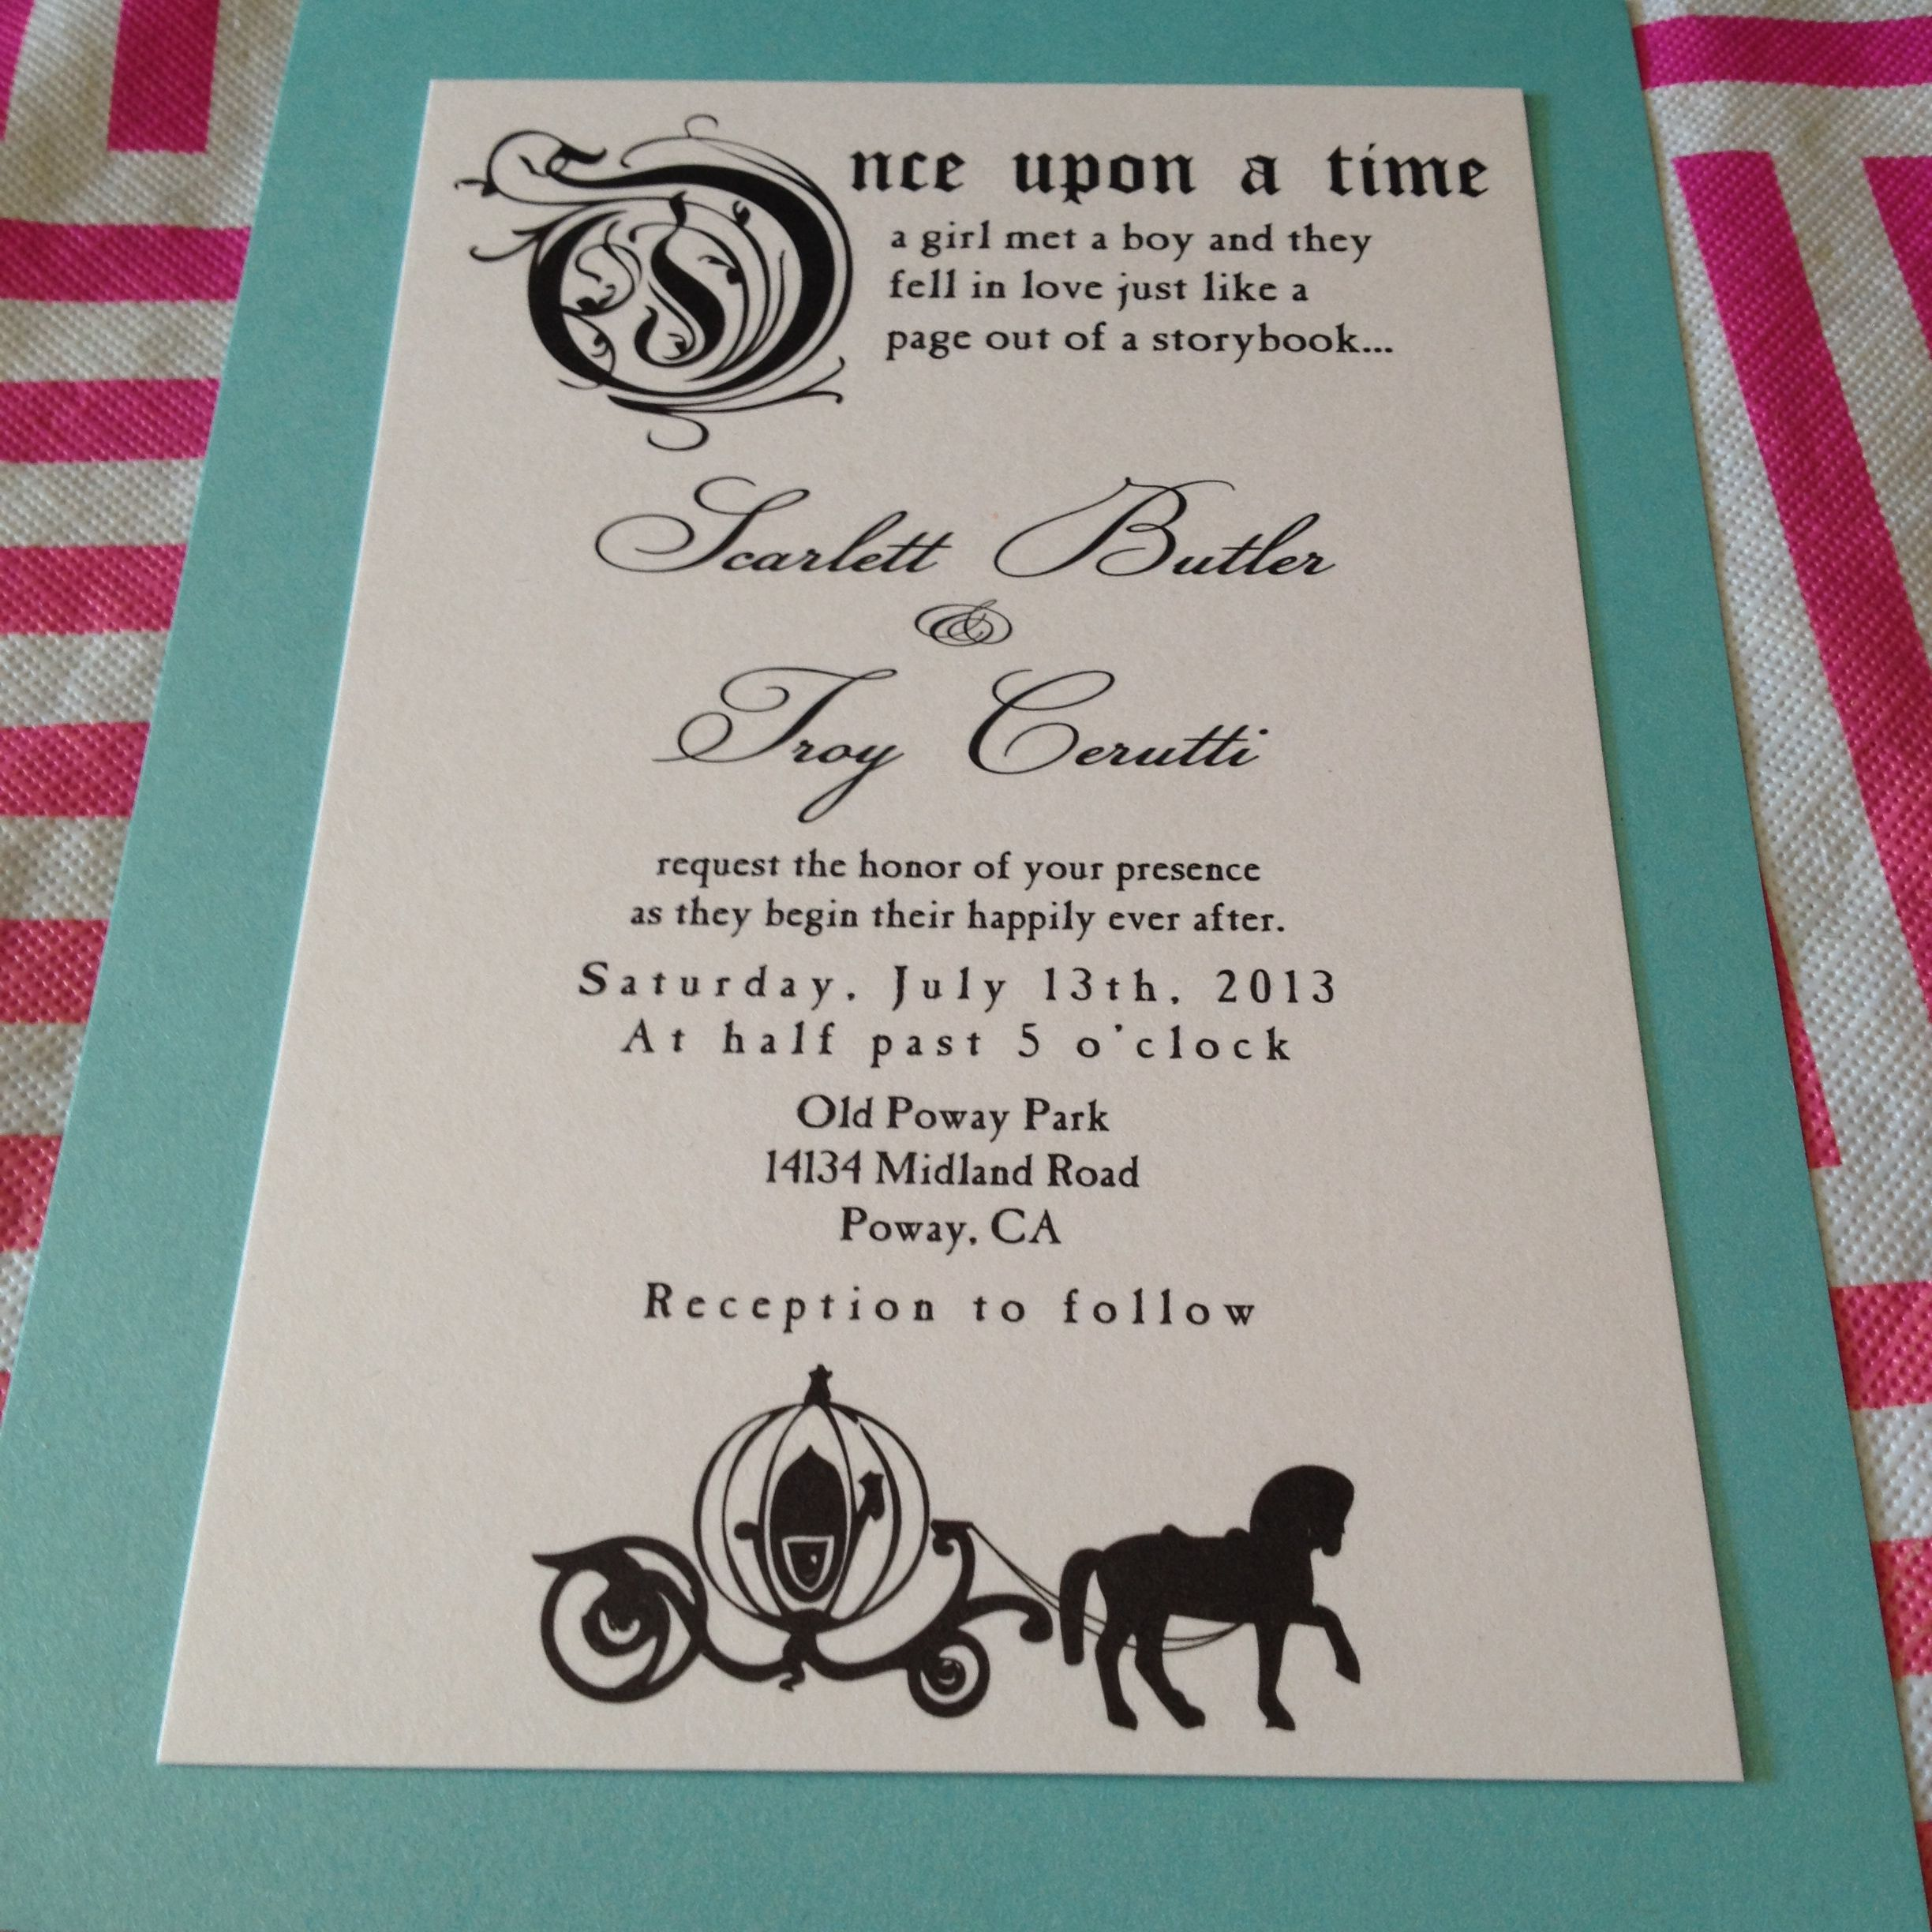 Fairytale wedding invitation once upon a time wedding invite fairytale wedding invitation once upon a time wedding invite diy invite fary monicamarmolfo Gallery